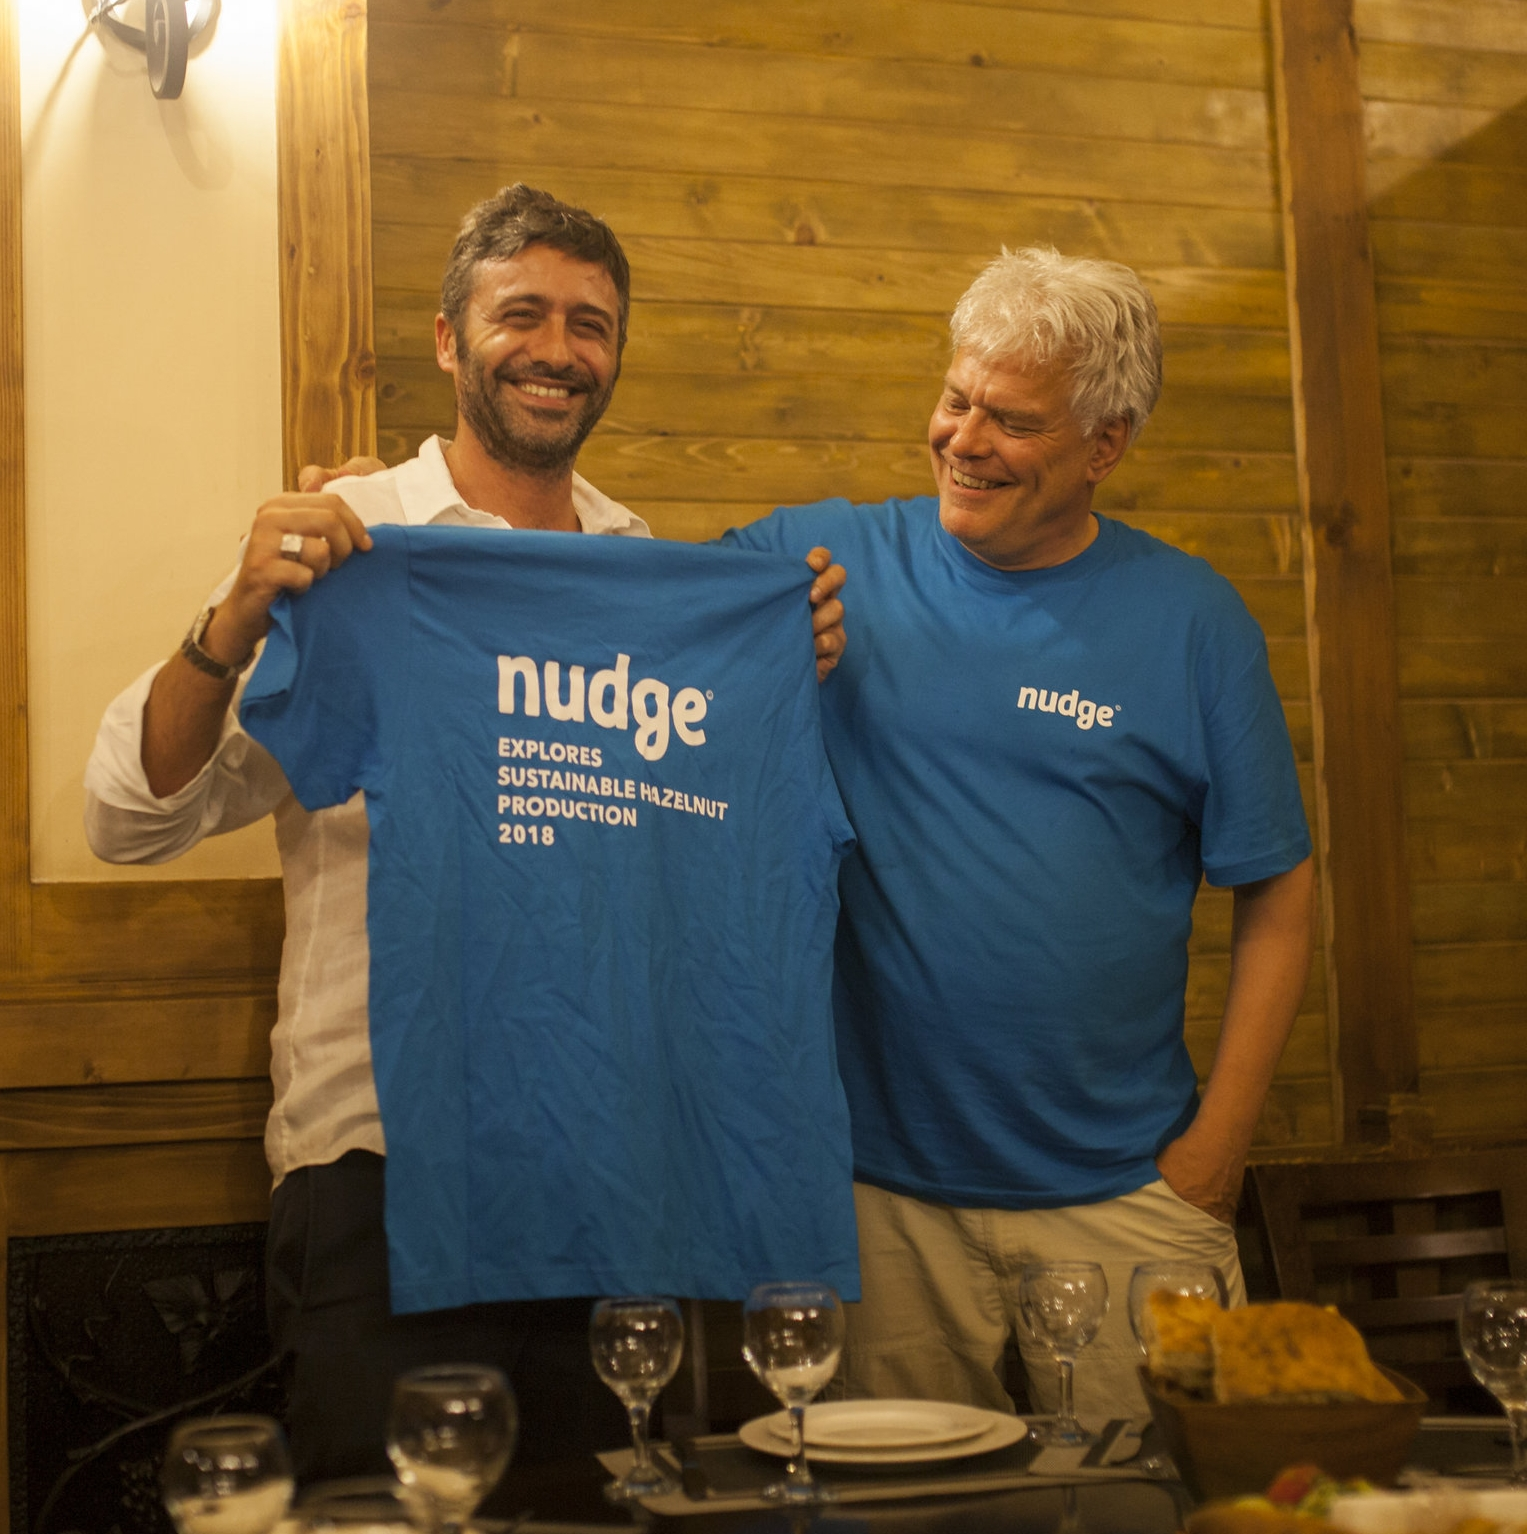 Federico Maria Grati (General Manager, AgriGeorgia) and Jan van Betten (Founder of Nudge)